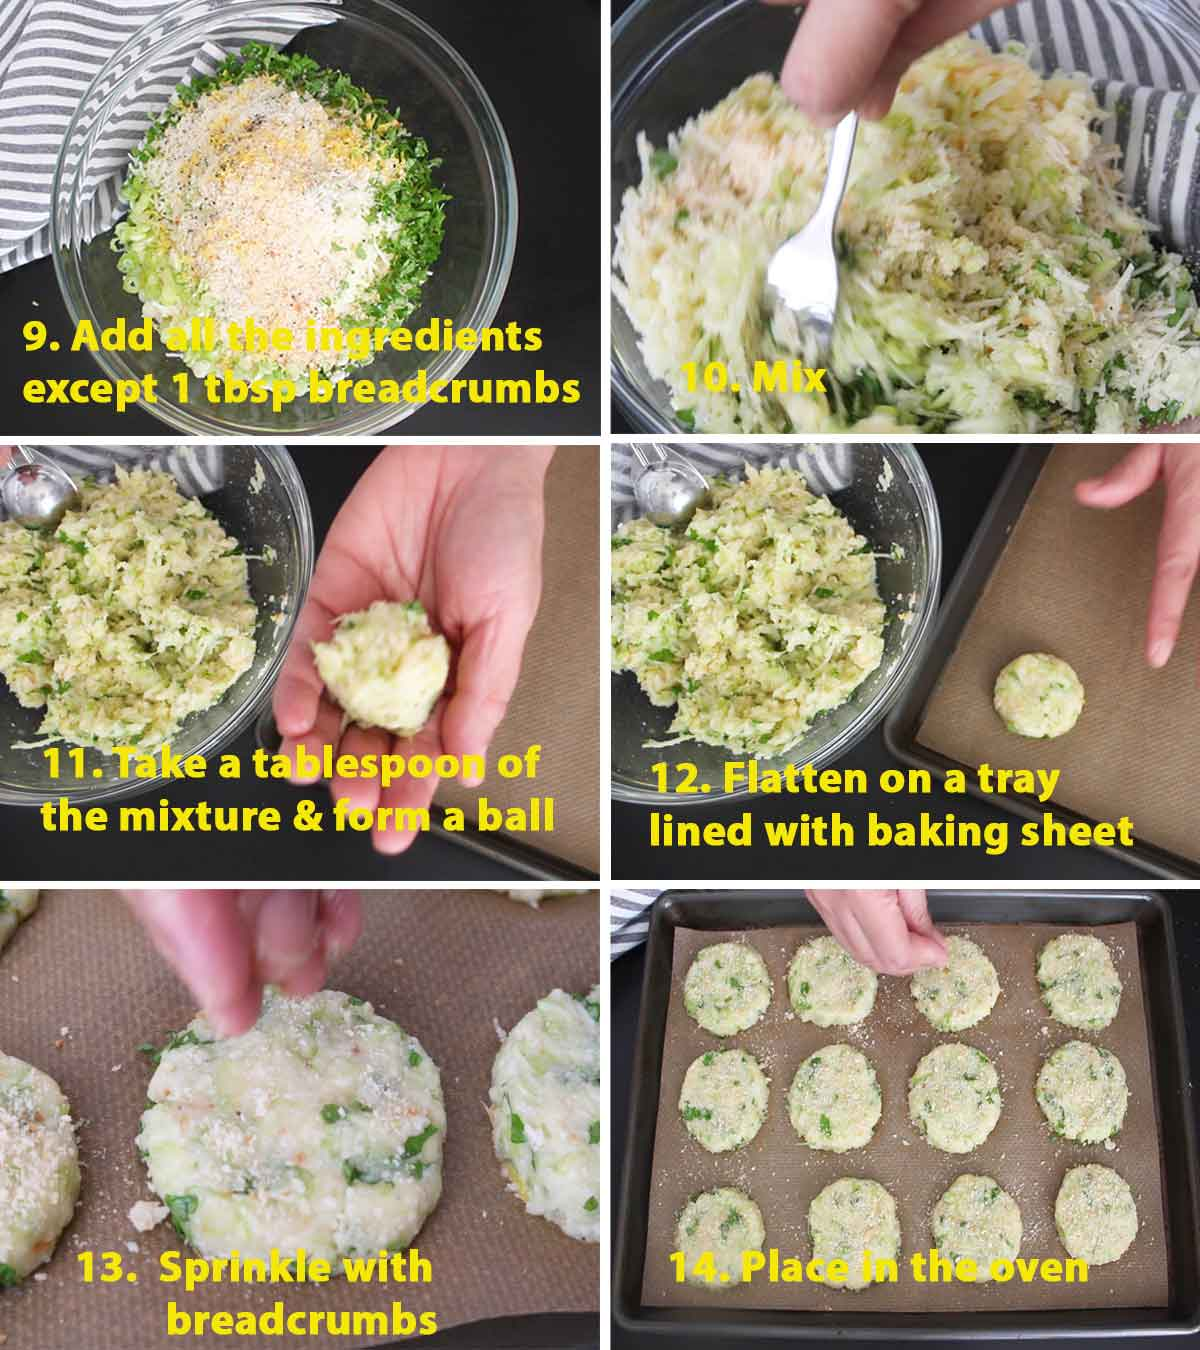 A collage of images showing the last part on the step by step process on how to make baked potato and zucchini bites. Because of the form of these bites, as shown in the collage, they are sometimes called potato and zucchini fritters.